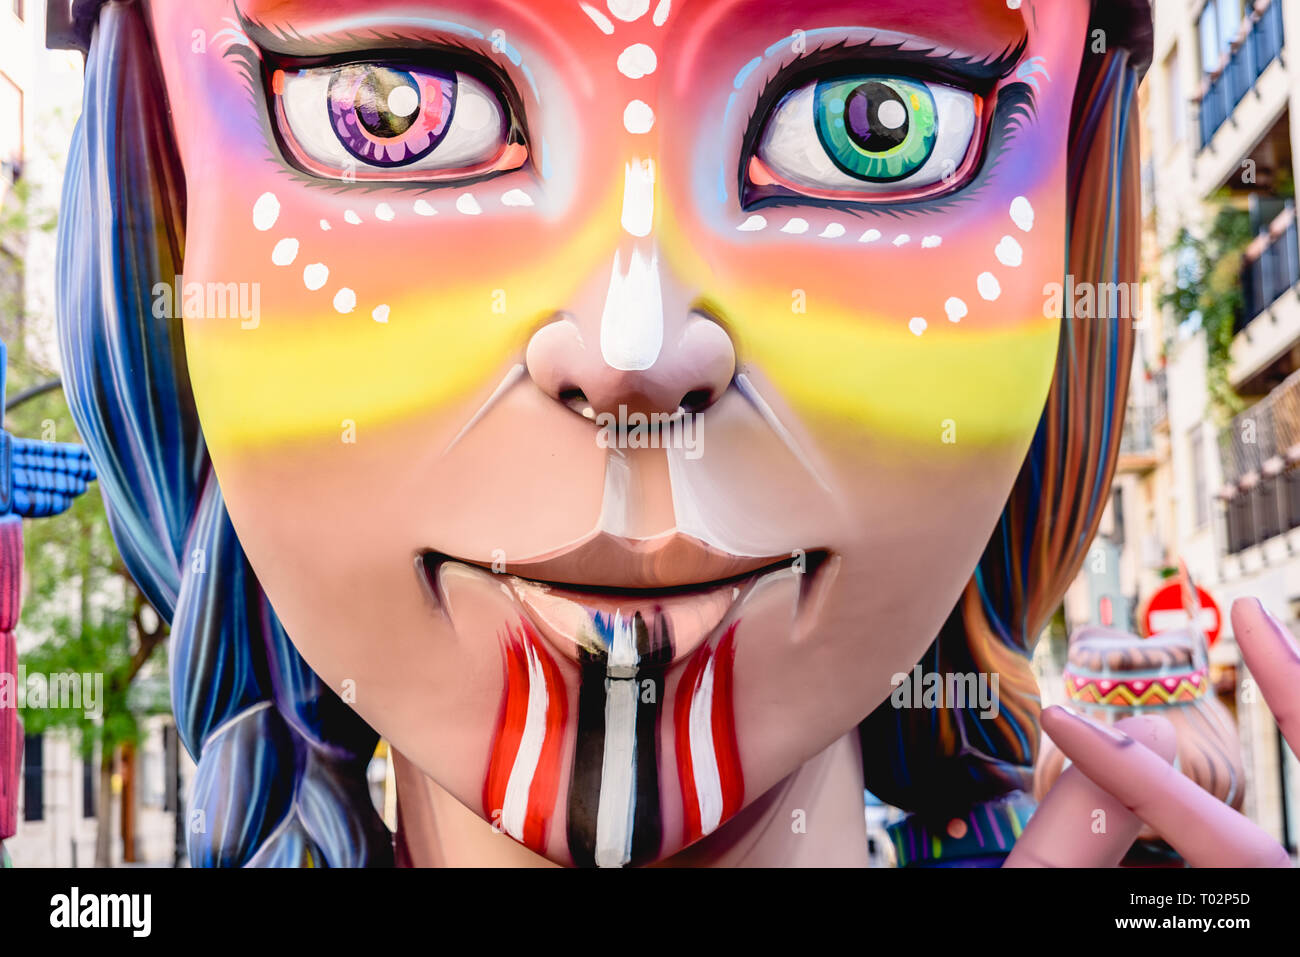 Valencia, Spain. 16th March 2019. Detail of some Fallas day monuments, publicly displayed in the squares of the neighborhoods to be admired by tourists. Credit: Joaquin Corbalan pastor/Alamy Live News - Stock Image